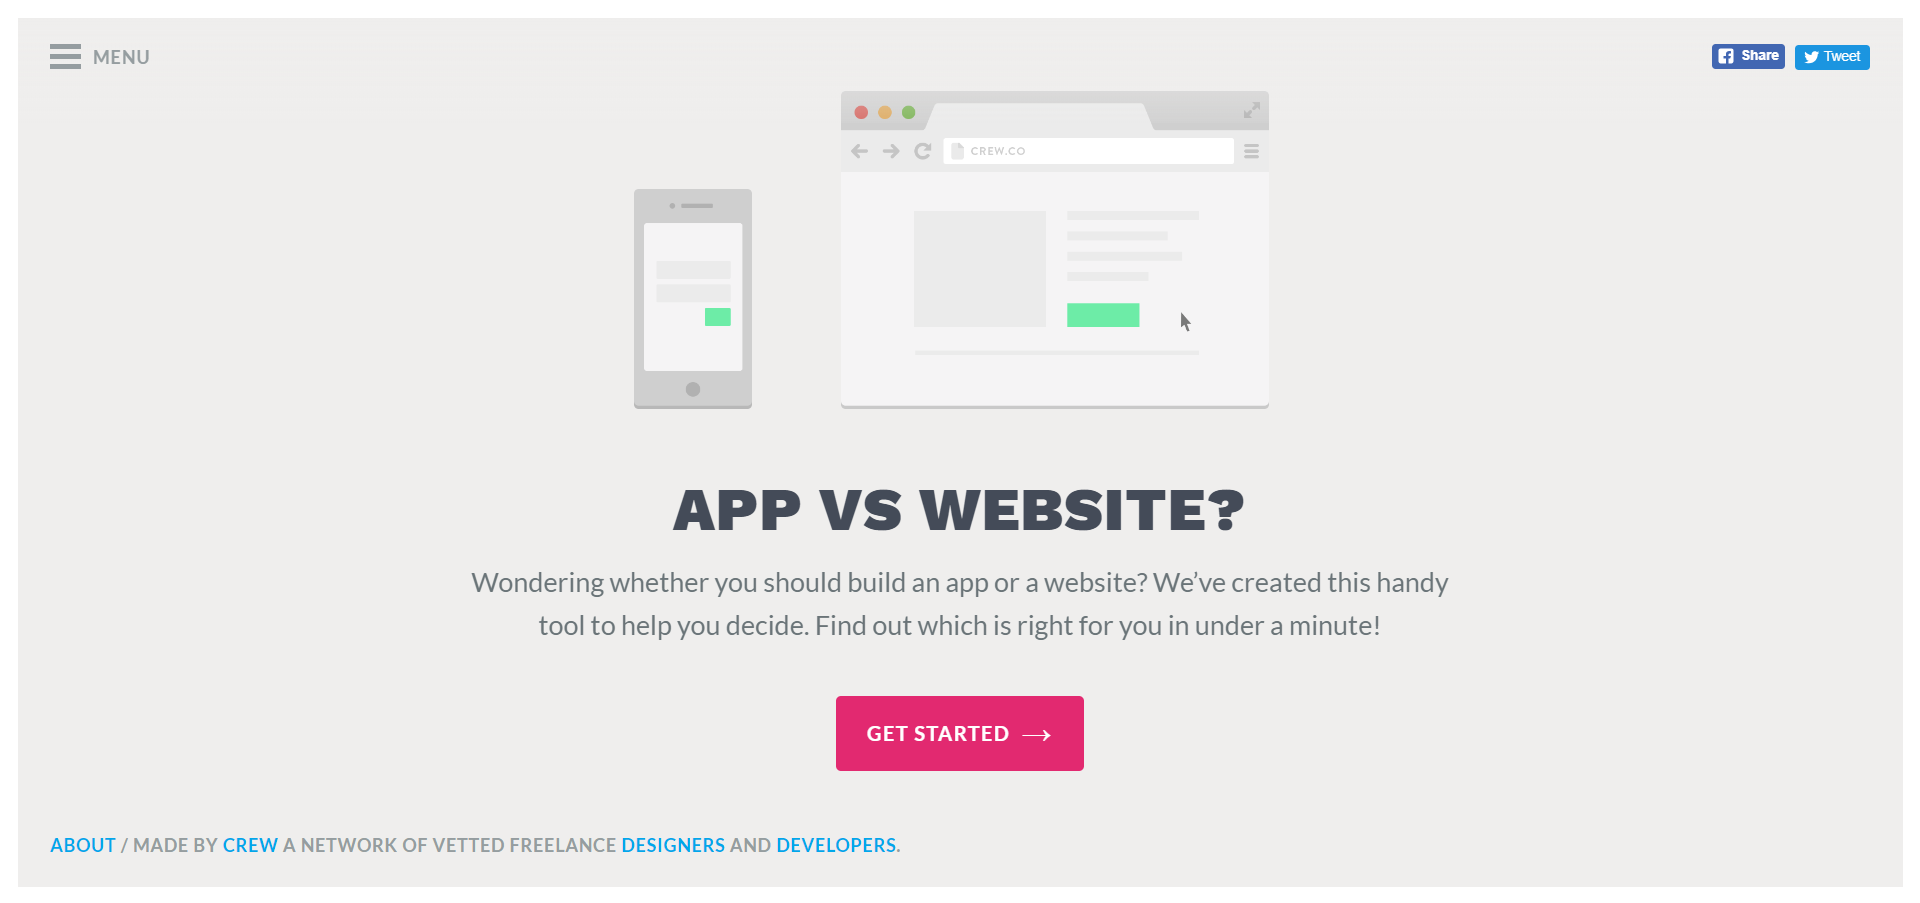 App vs. Website website image